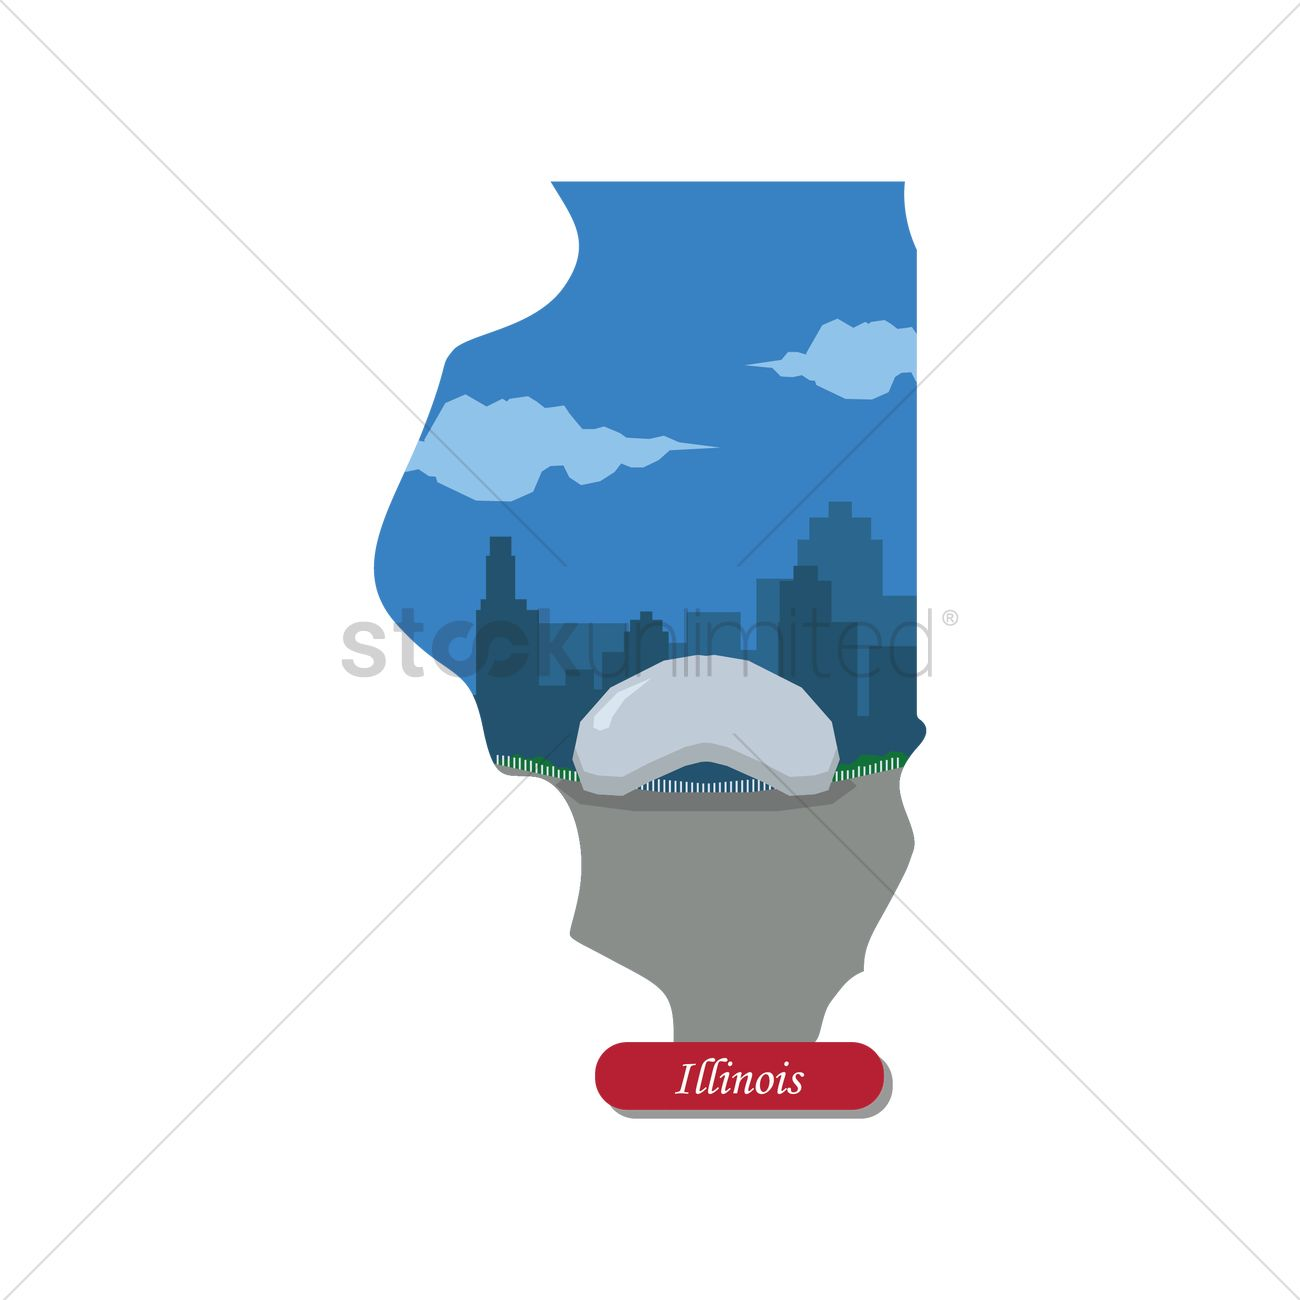 Illinois state map Vector Image - 1551374 | StockUnlimited on illinois map fun, illinois rt 66 map, illinois map 3d, illinois map western, illinois map book, illinois map outline, illinois map logo, illinois postcard, illinois map funny, illinois usa, illinois map crime, illinois map coloring page, illinois map joke, illinois map drawing, illinois on america, illinois black and white clip art, illinois map black, illinois map vintage, midwest cartoon, illinois map painting,